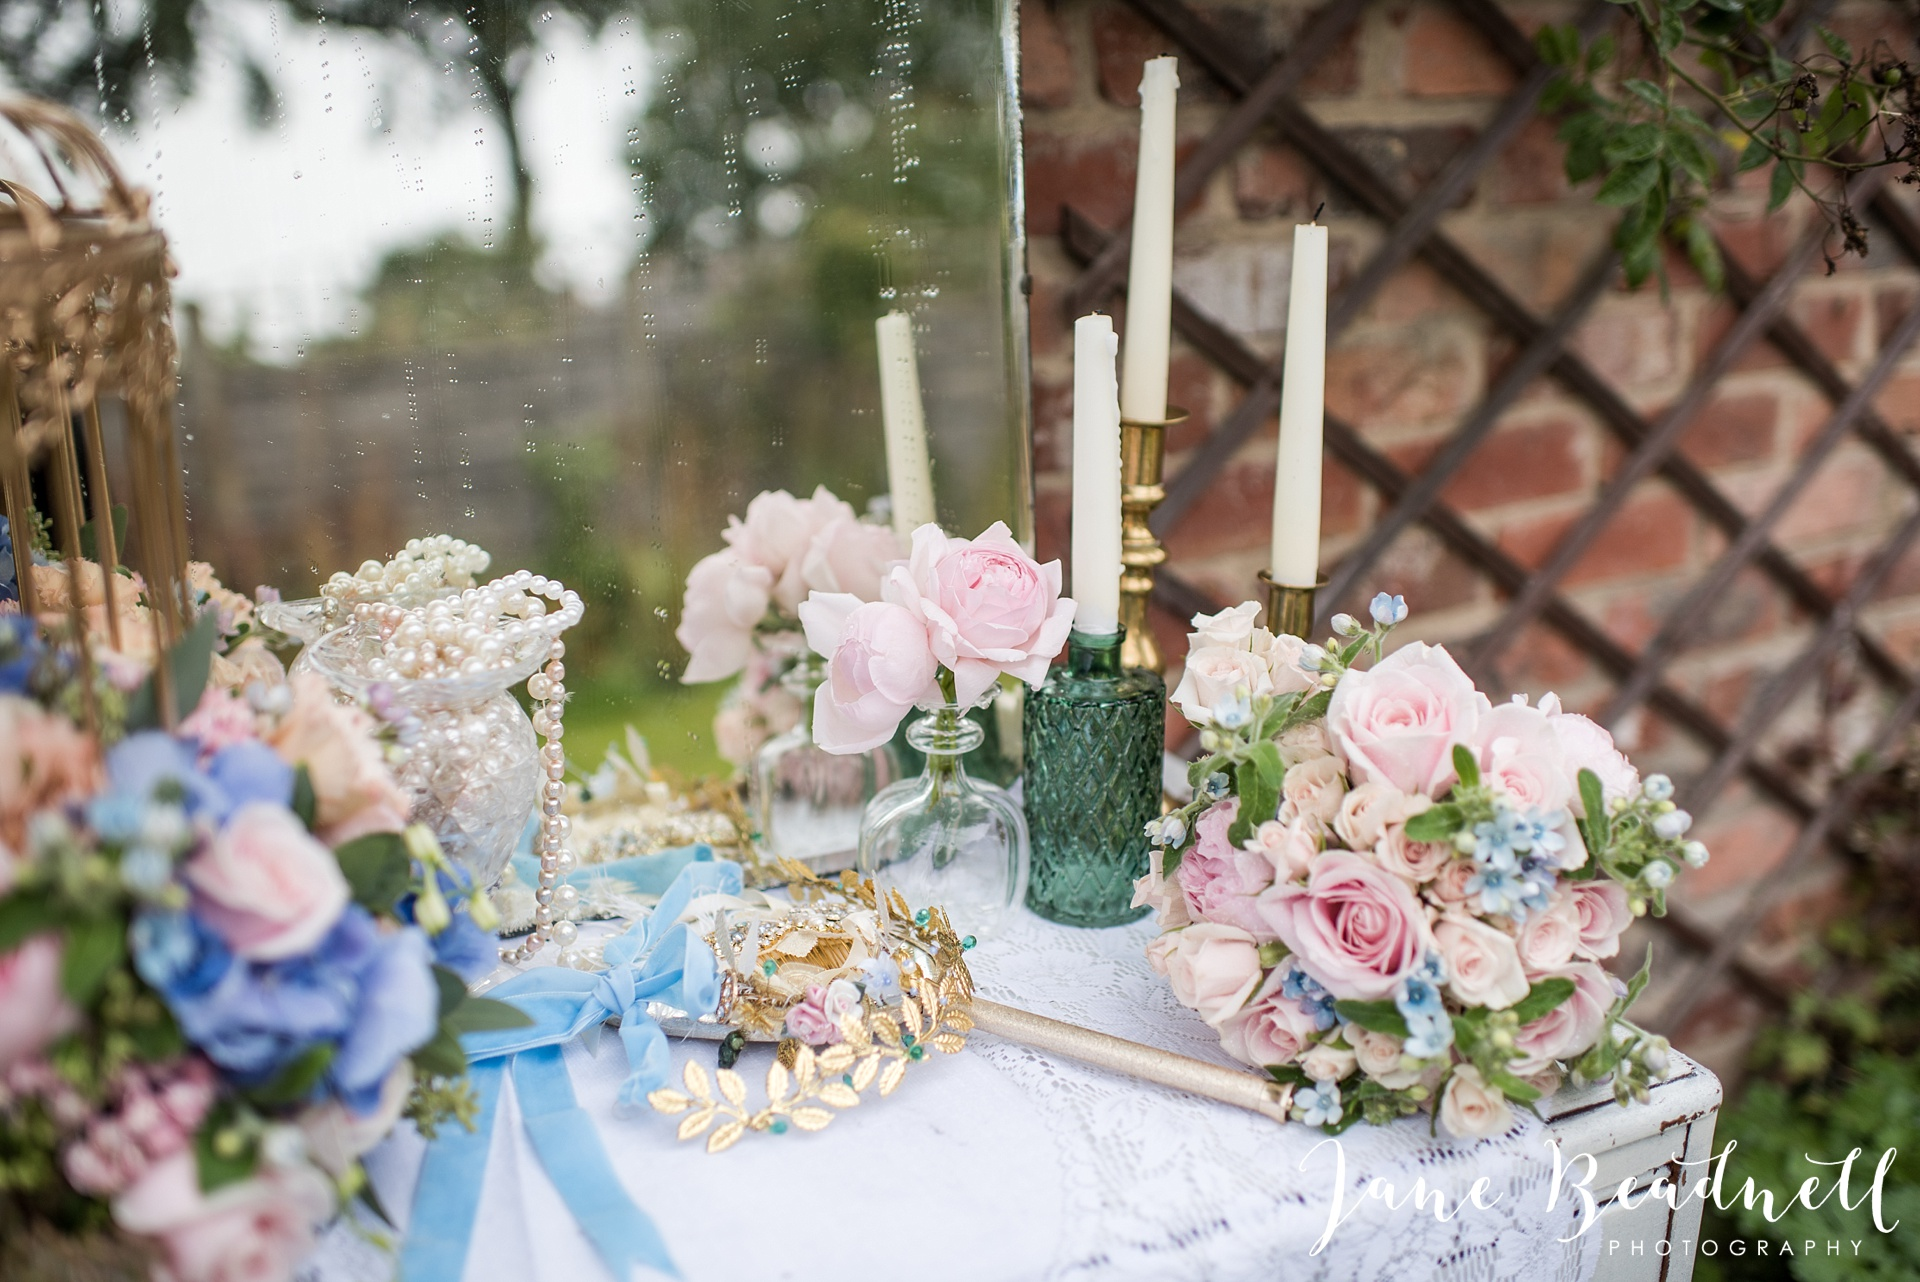 fine-art-wedding-photographer-jane-beadnell-photography-yorkshire-wedding-photographer_0006